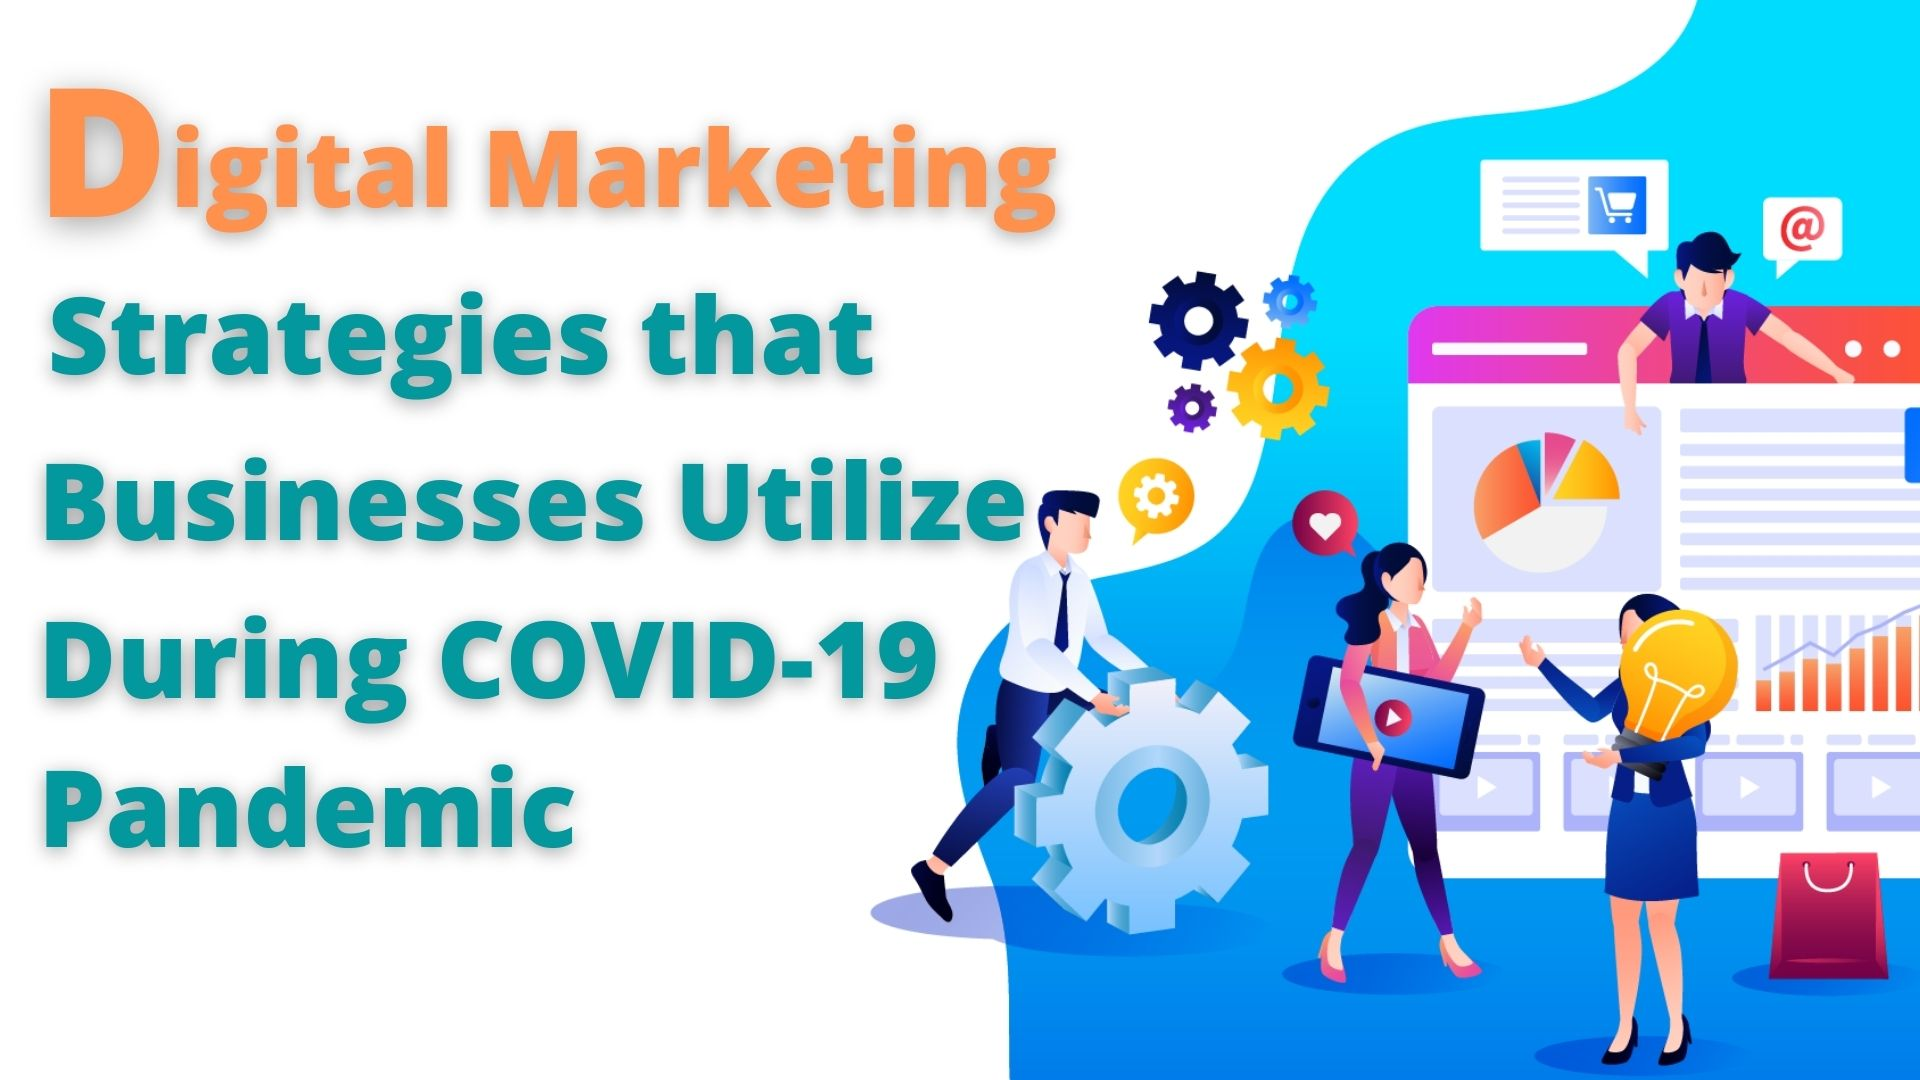 Digital Marketing Strategies that Businesses Utilize During COVID-19 Pandemic